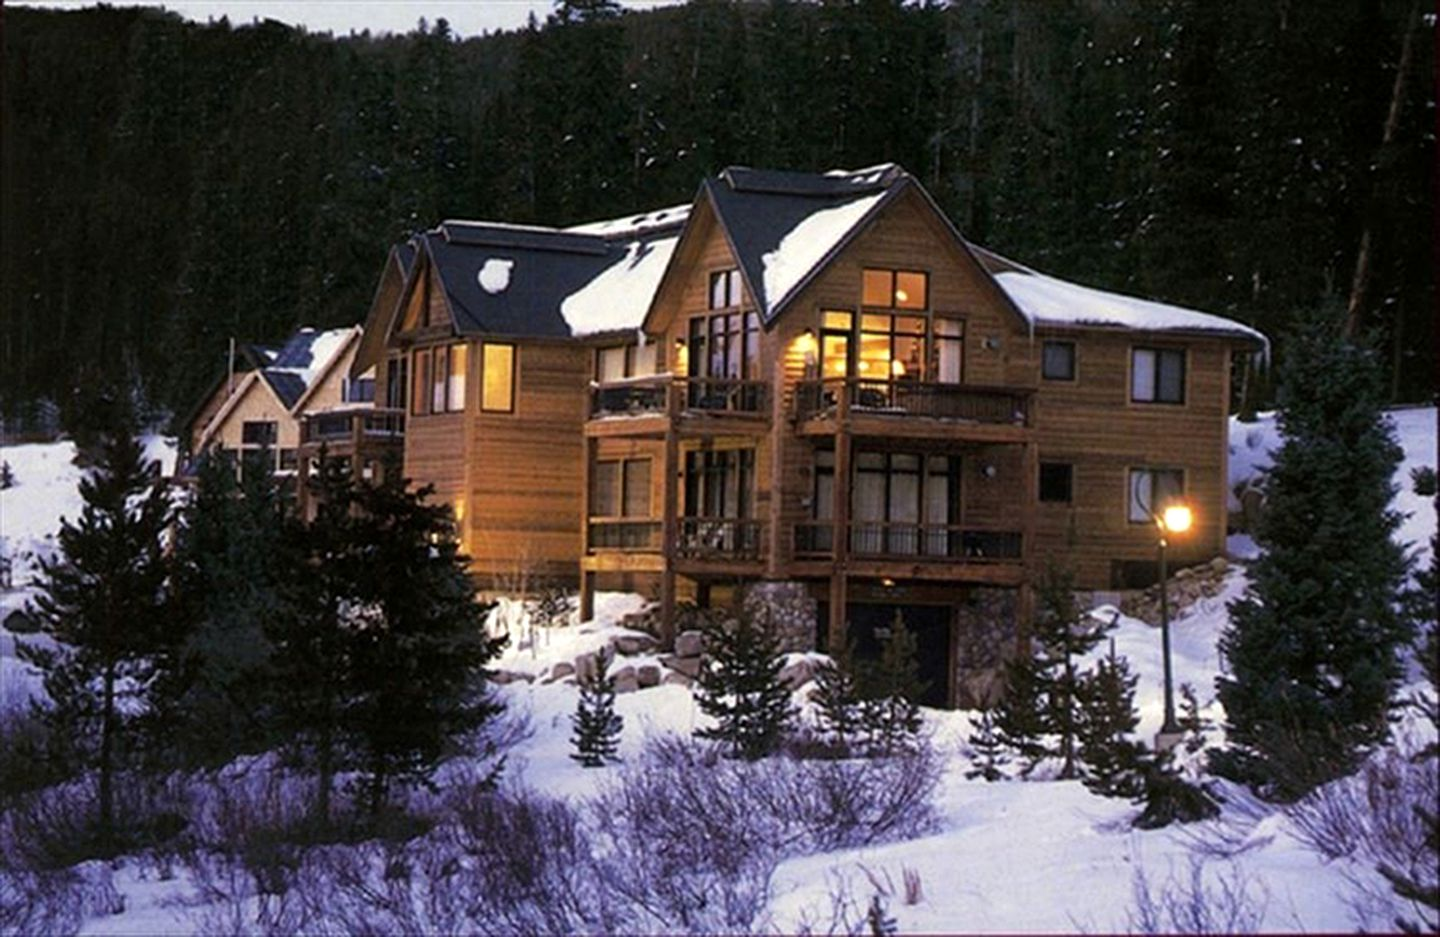 Nature Lodges (Granby, Colorado, United States)